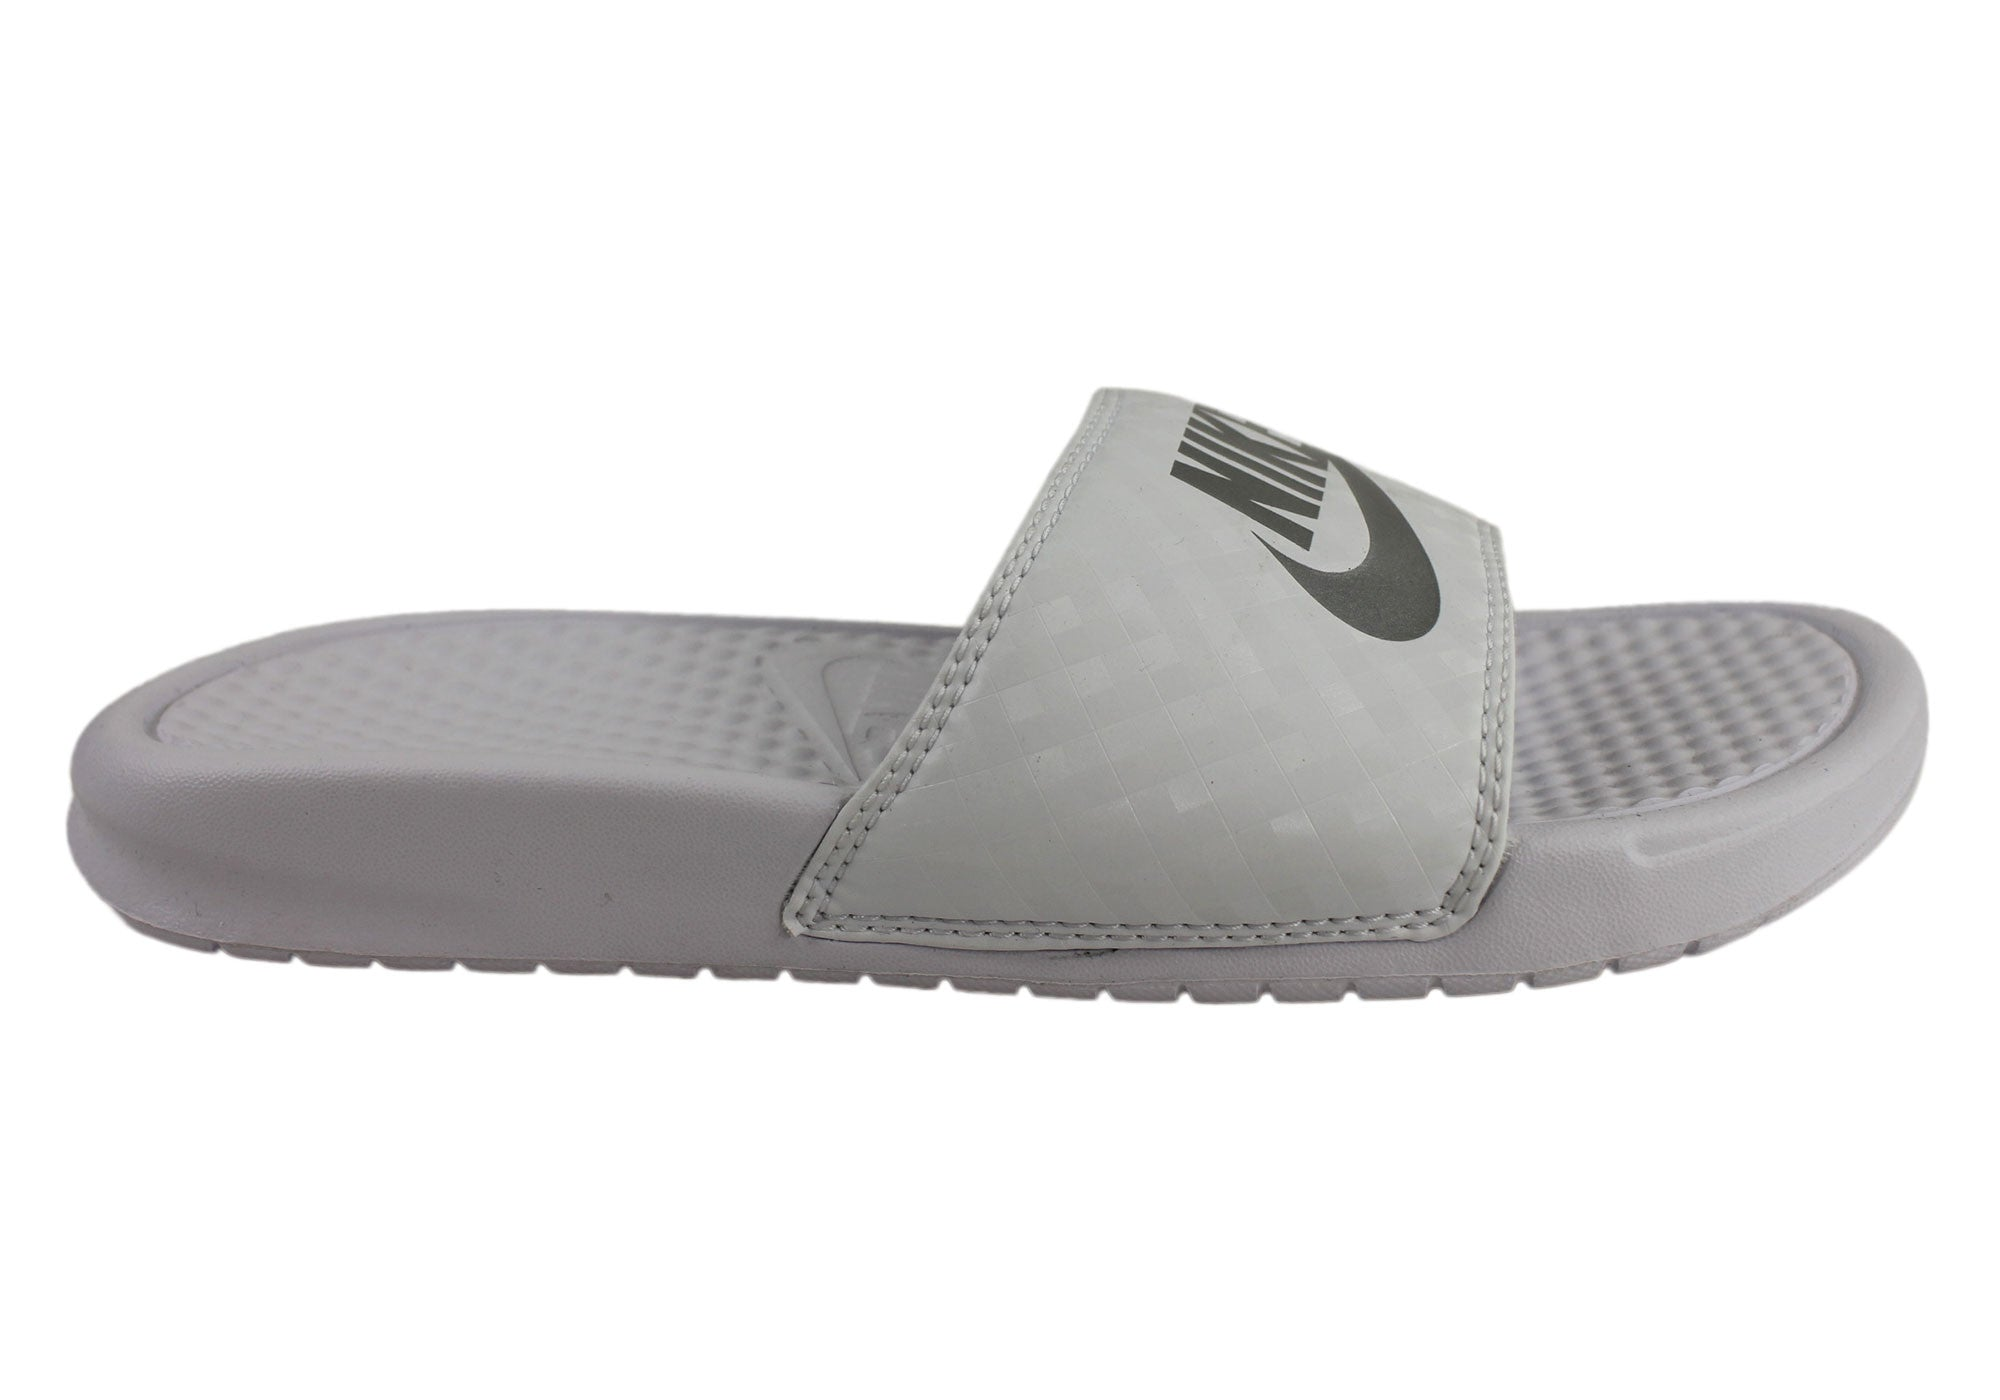 Awesome Nike Benassi JDI Slide - Navy/White | Scoopon Shopping